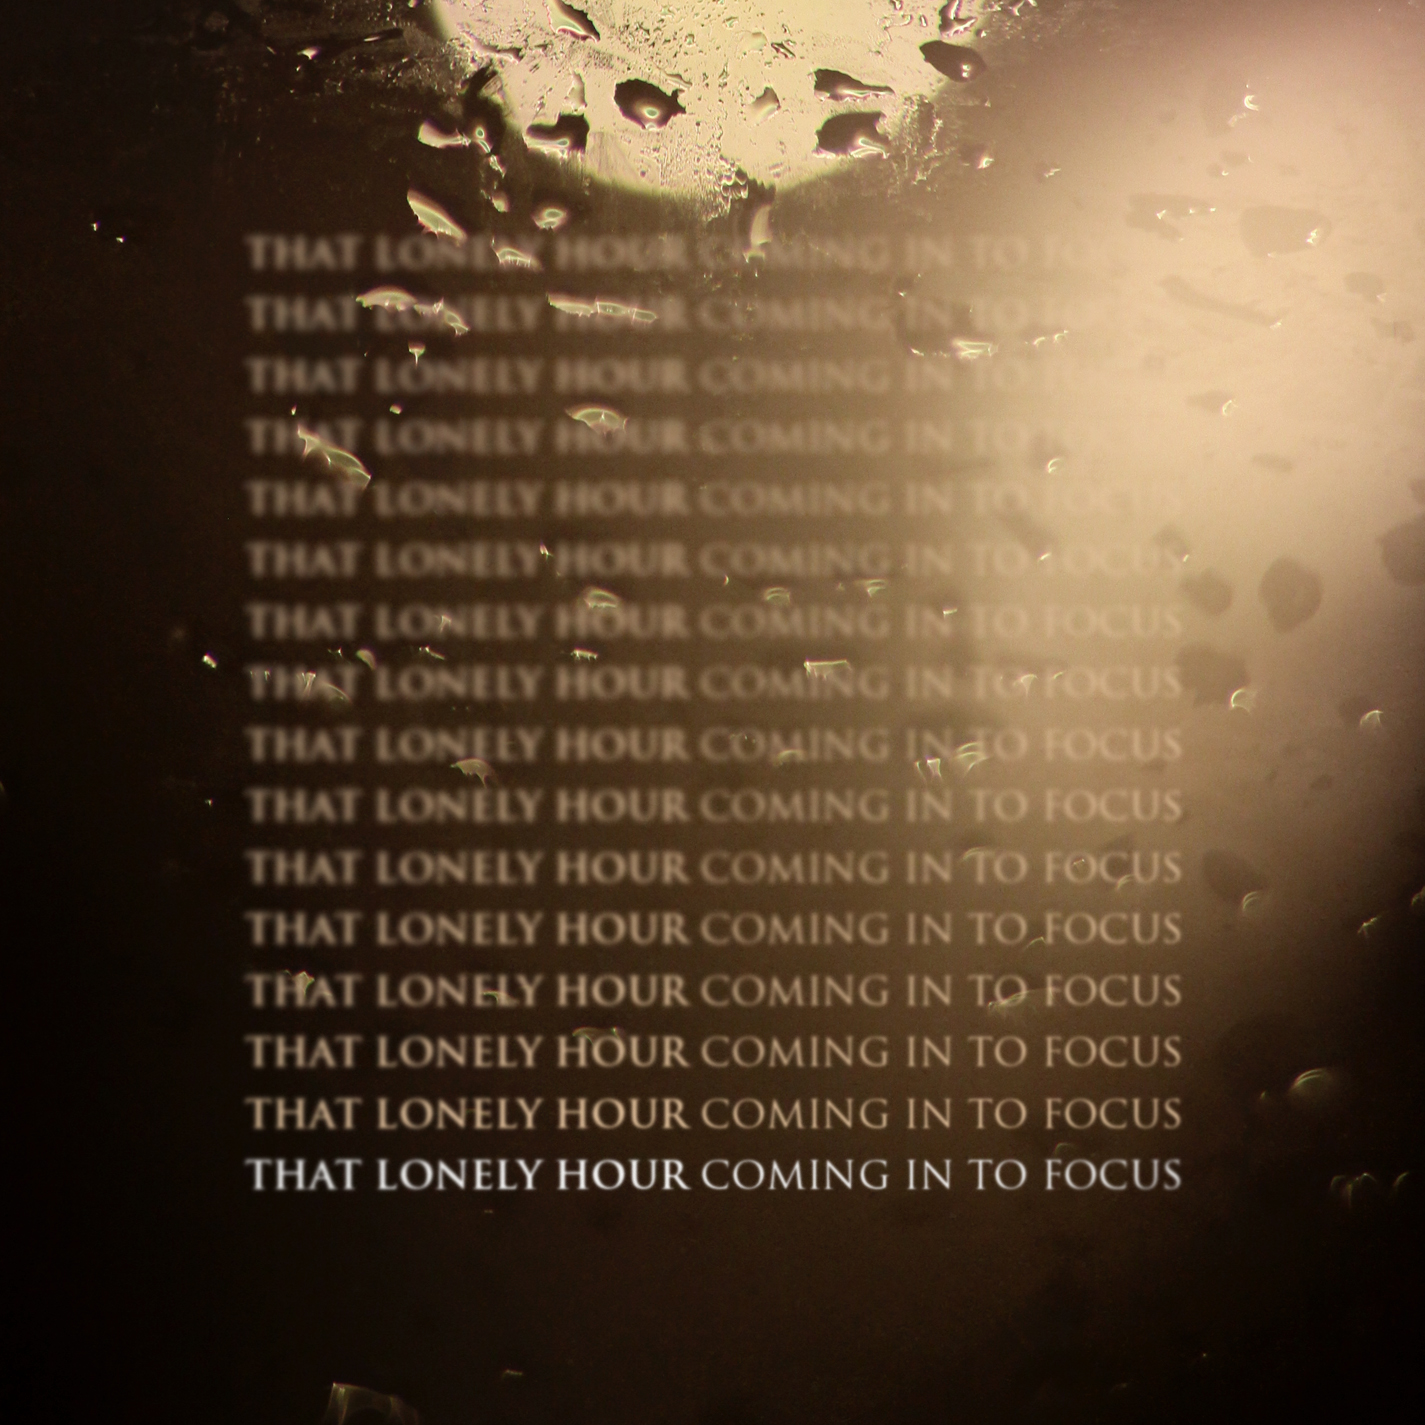 That Lonely Hour - Coming In To Focus